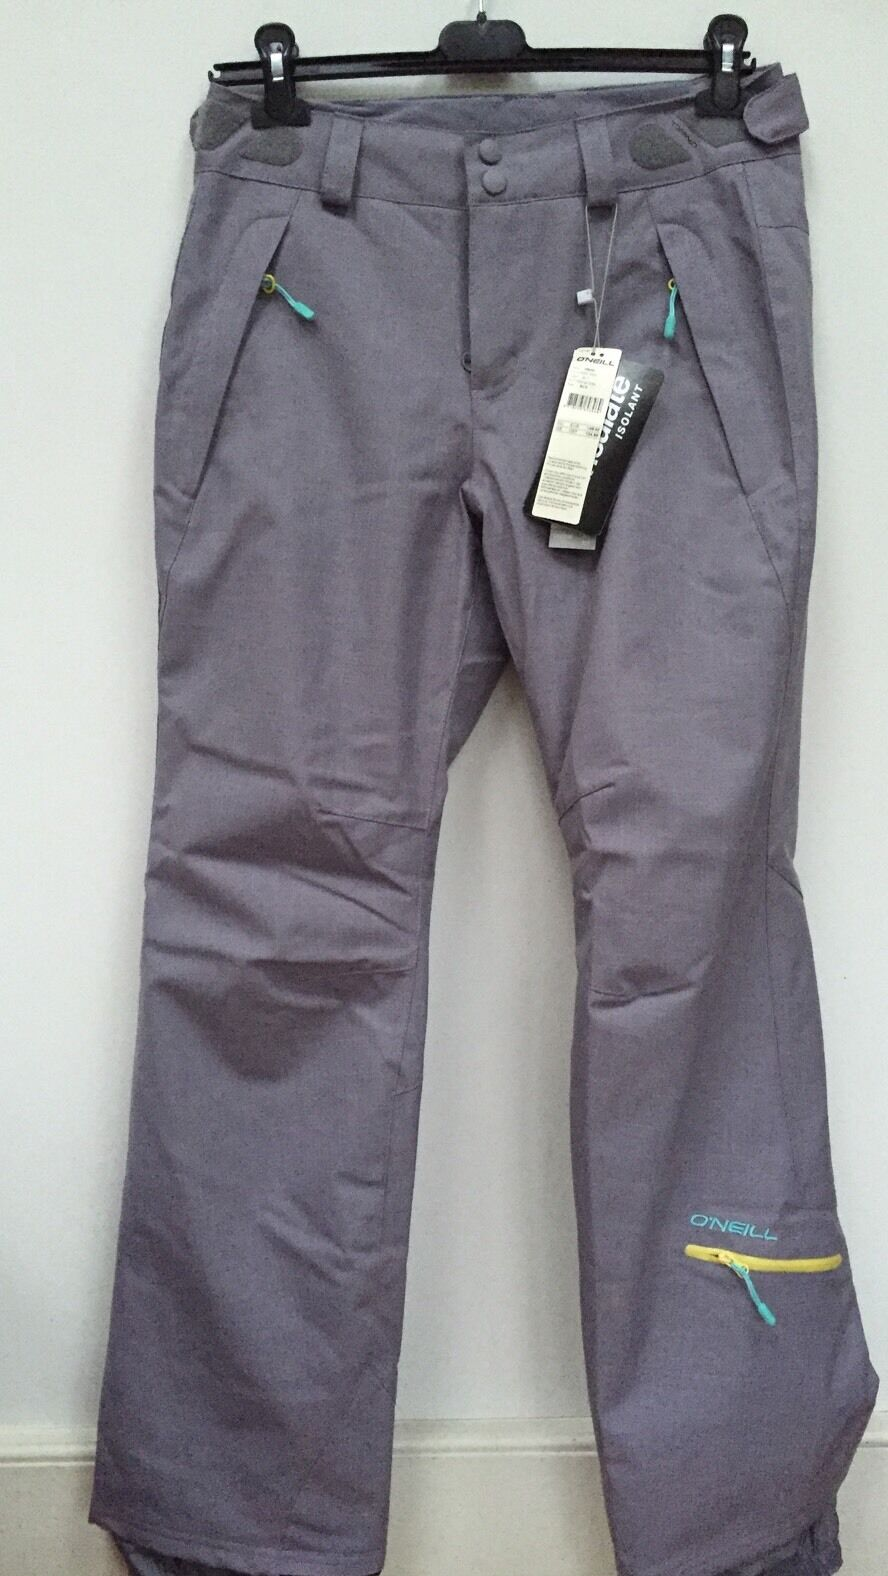 Adult O Neill Skiing Snowboarding Trousers Grey Size S Rrp 130k